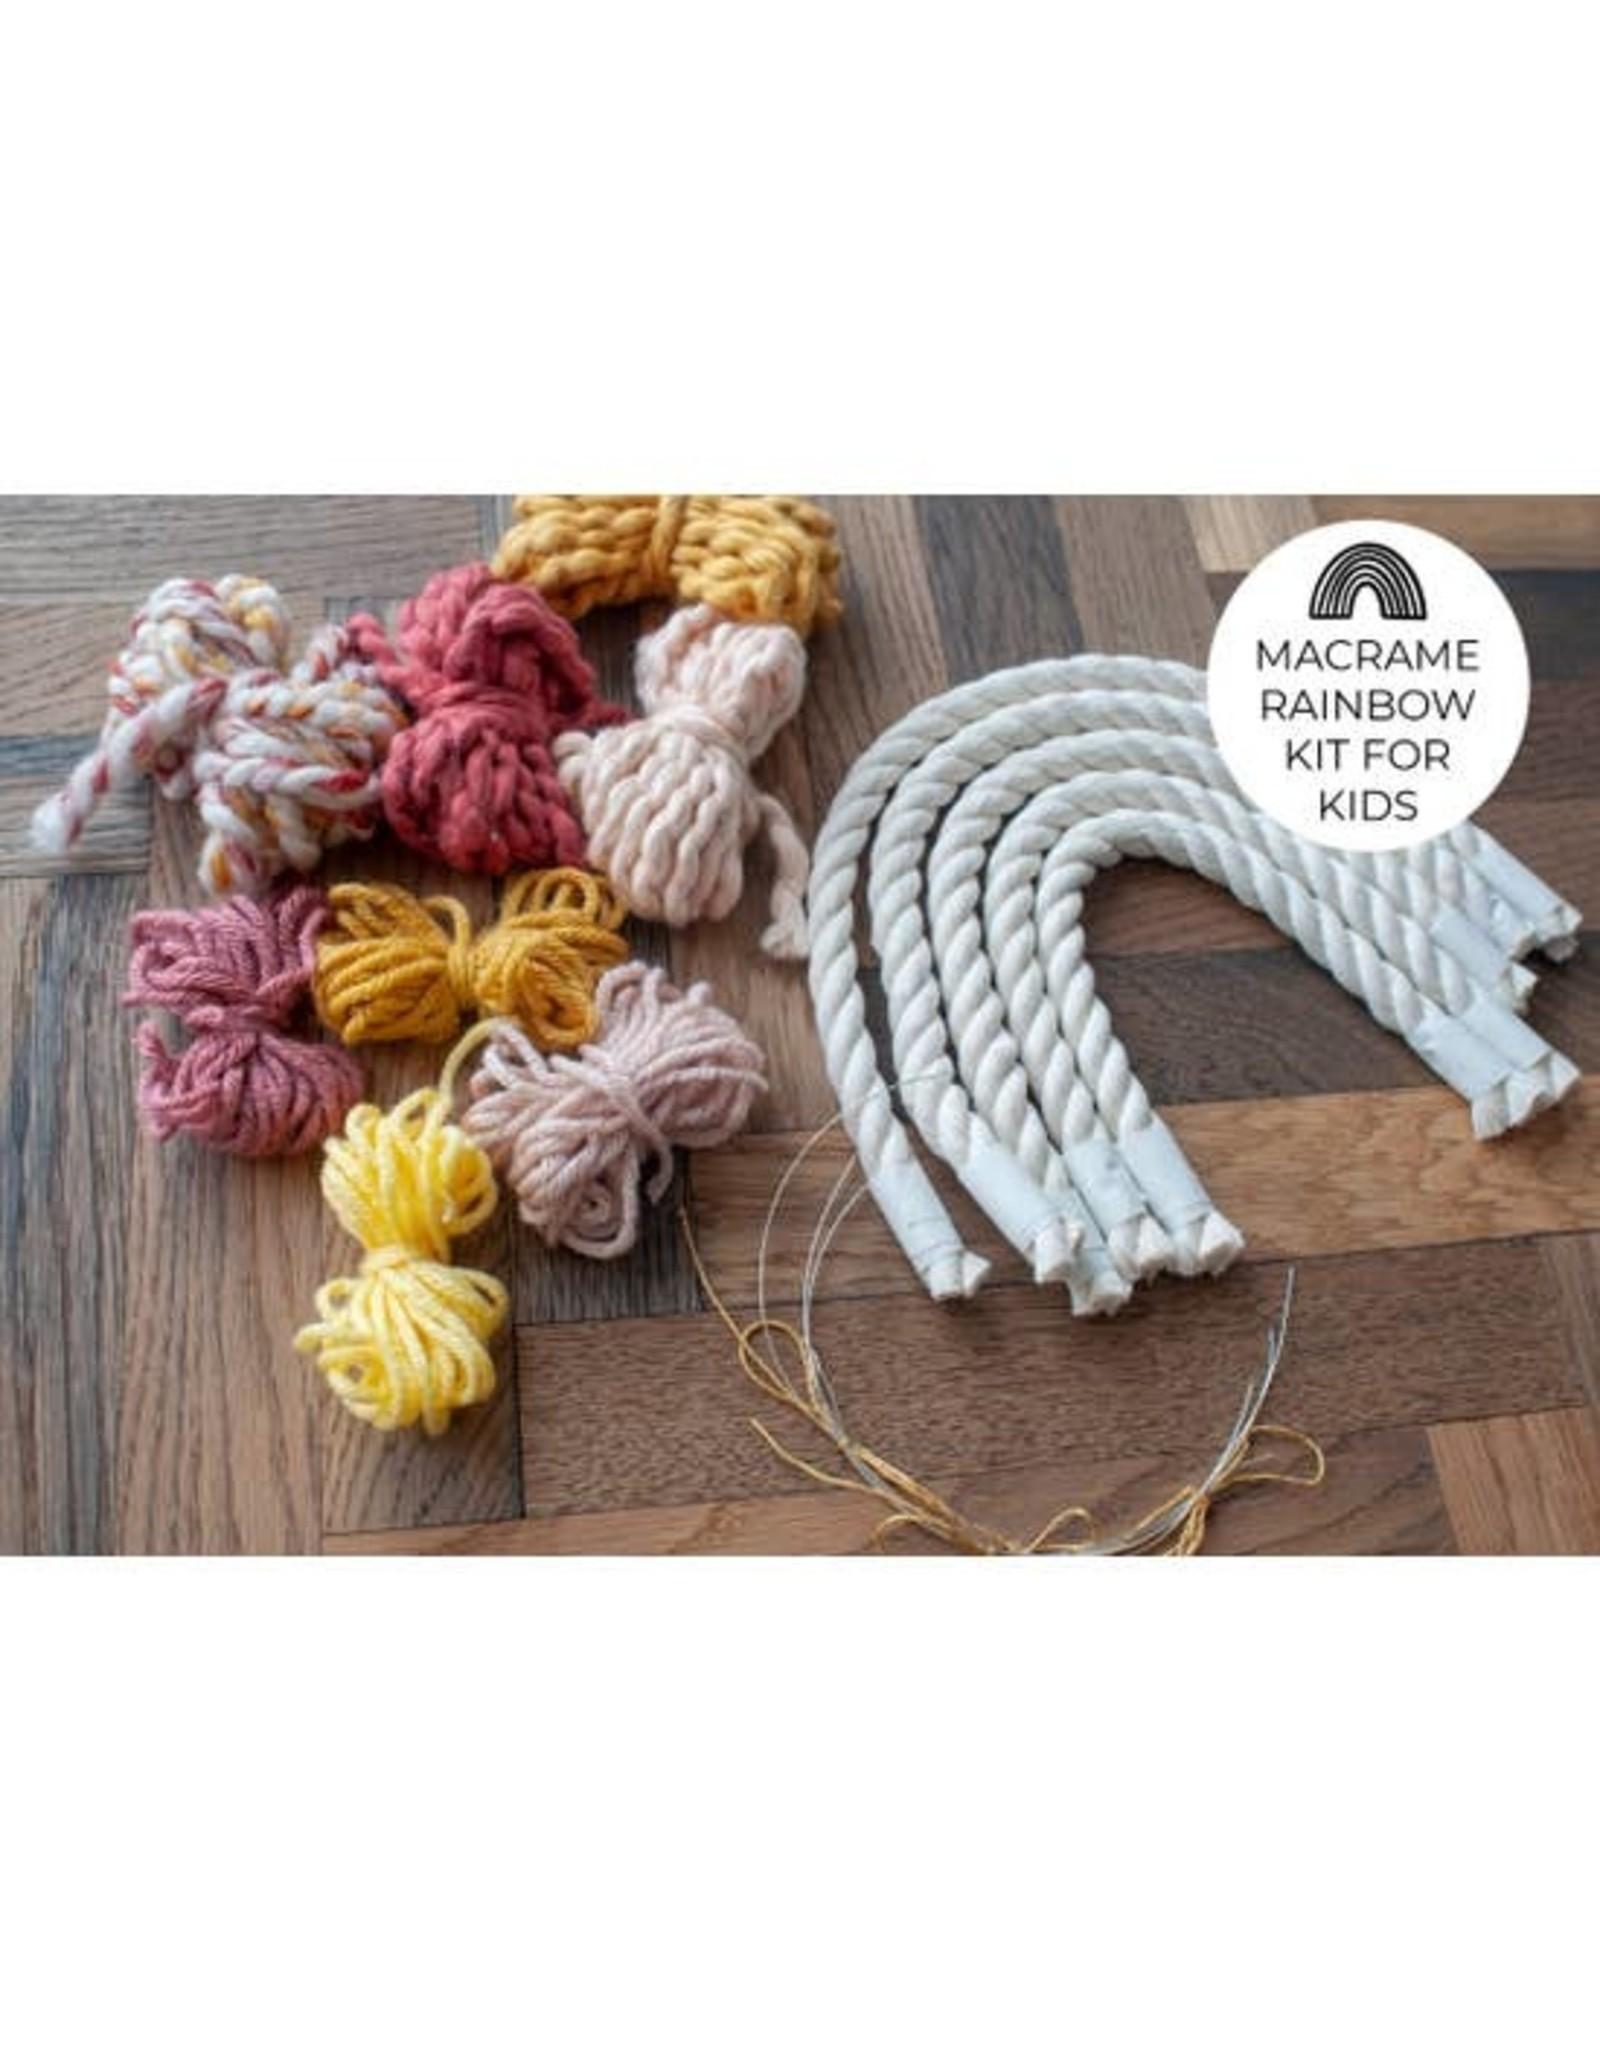 Hello Dear Heart Macrame Rainbow Kits for Kids: Red & Yellow